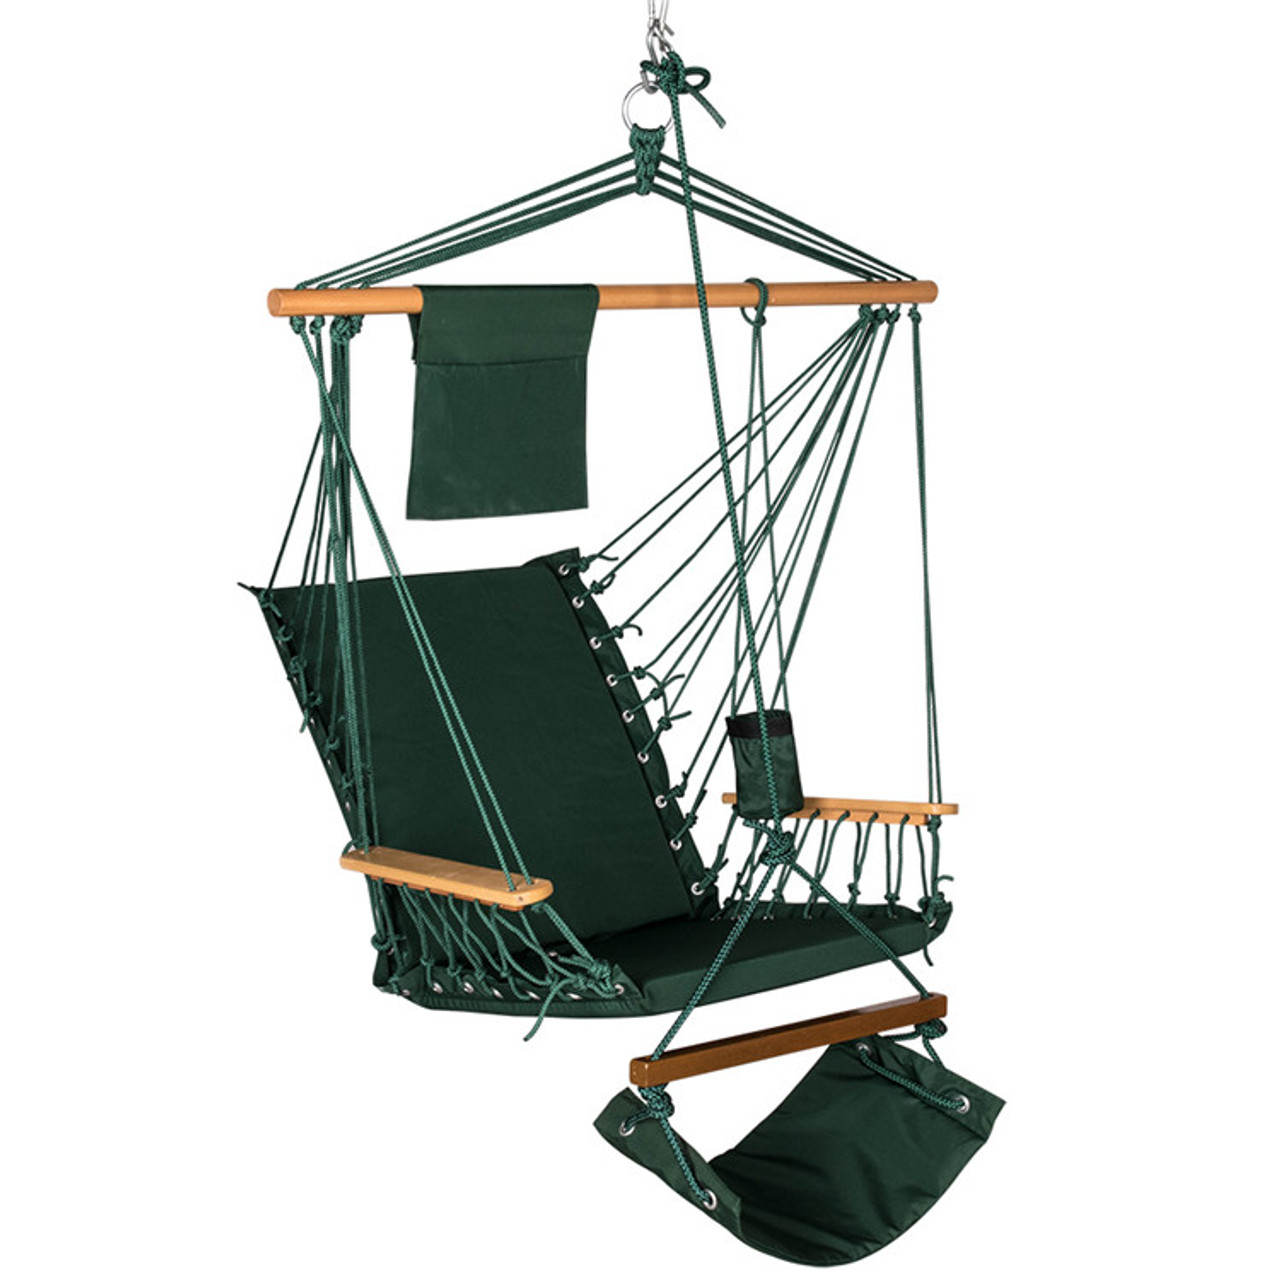 Lazy Daze Hammocks Hanging Rope Chair Cotton Padded Swing Chair Hammock  Seat With Cup Holder,